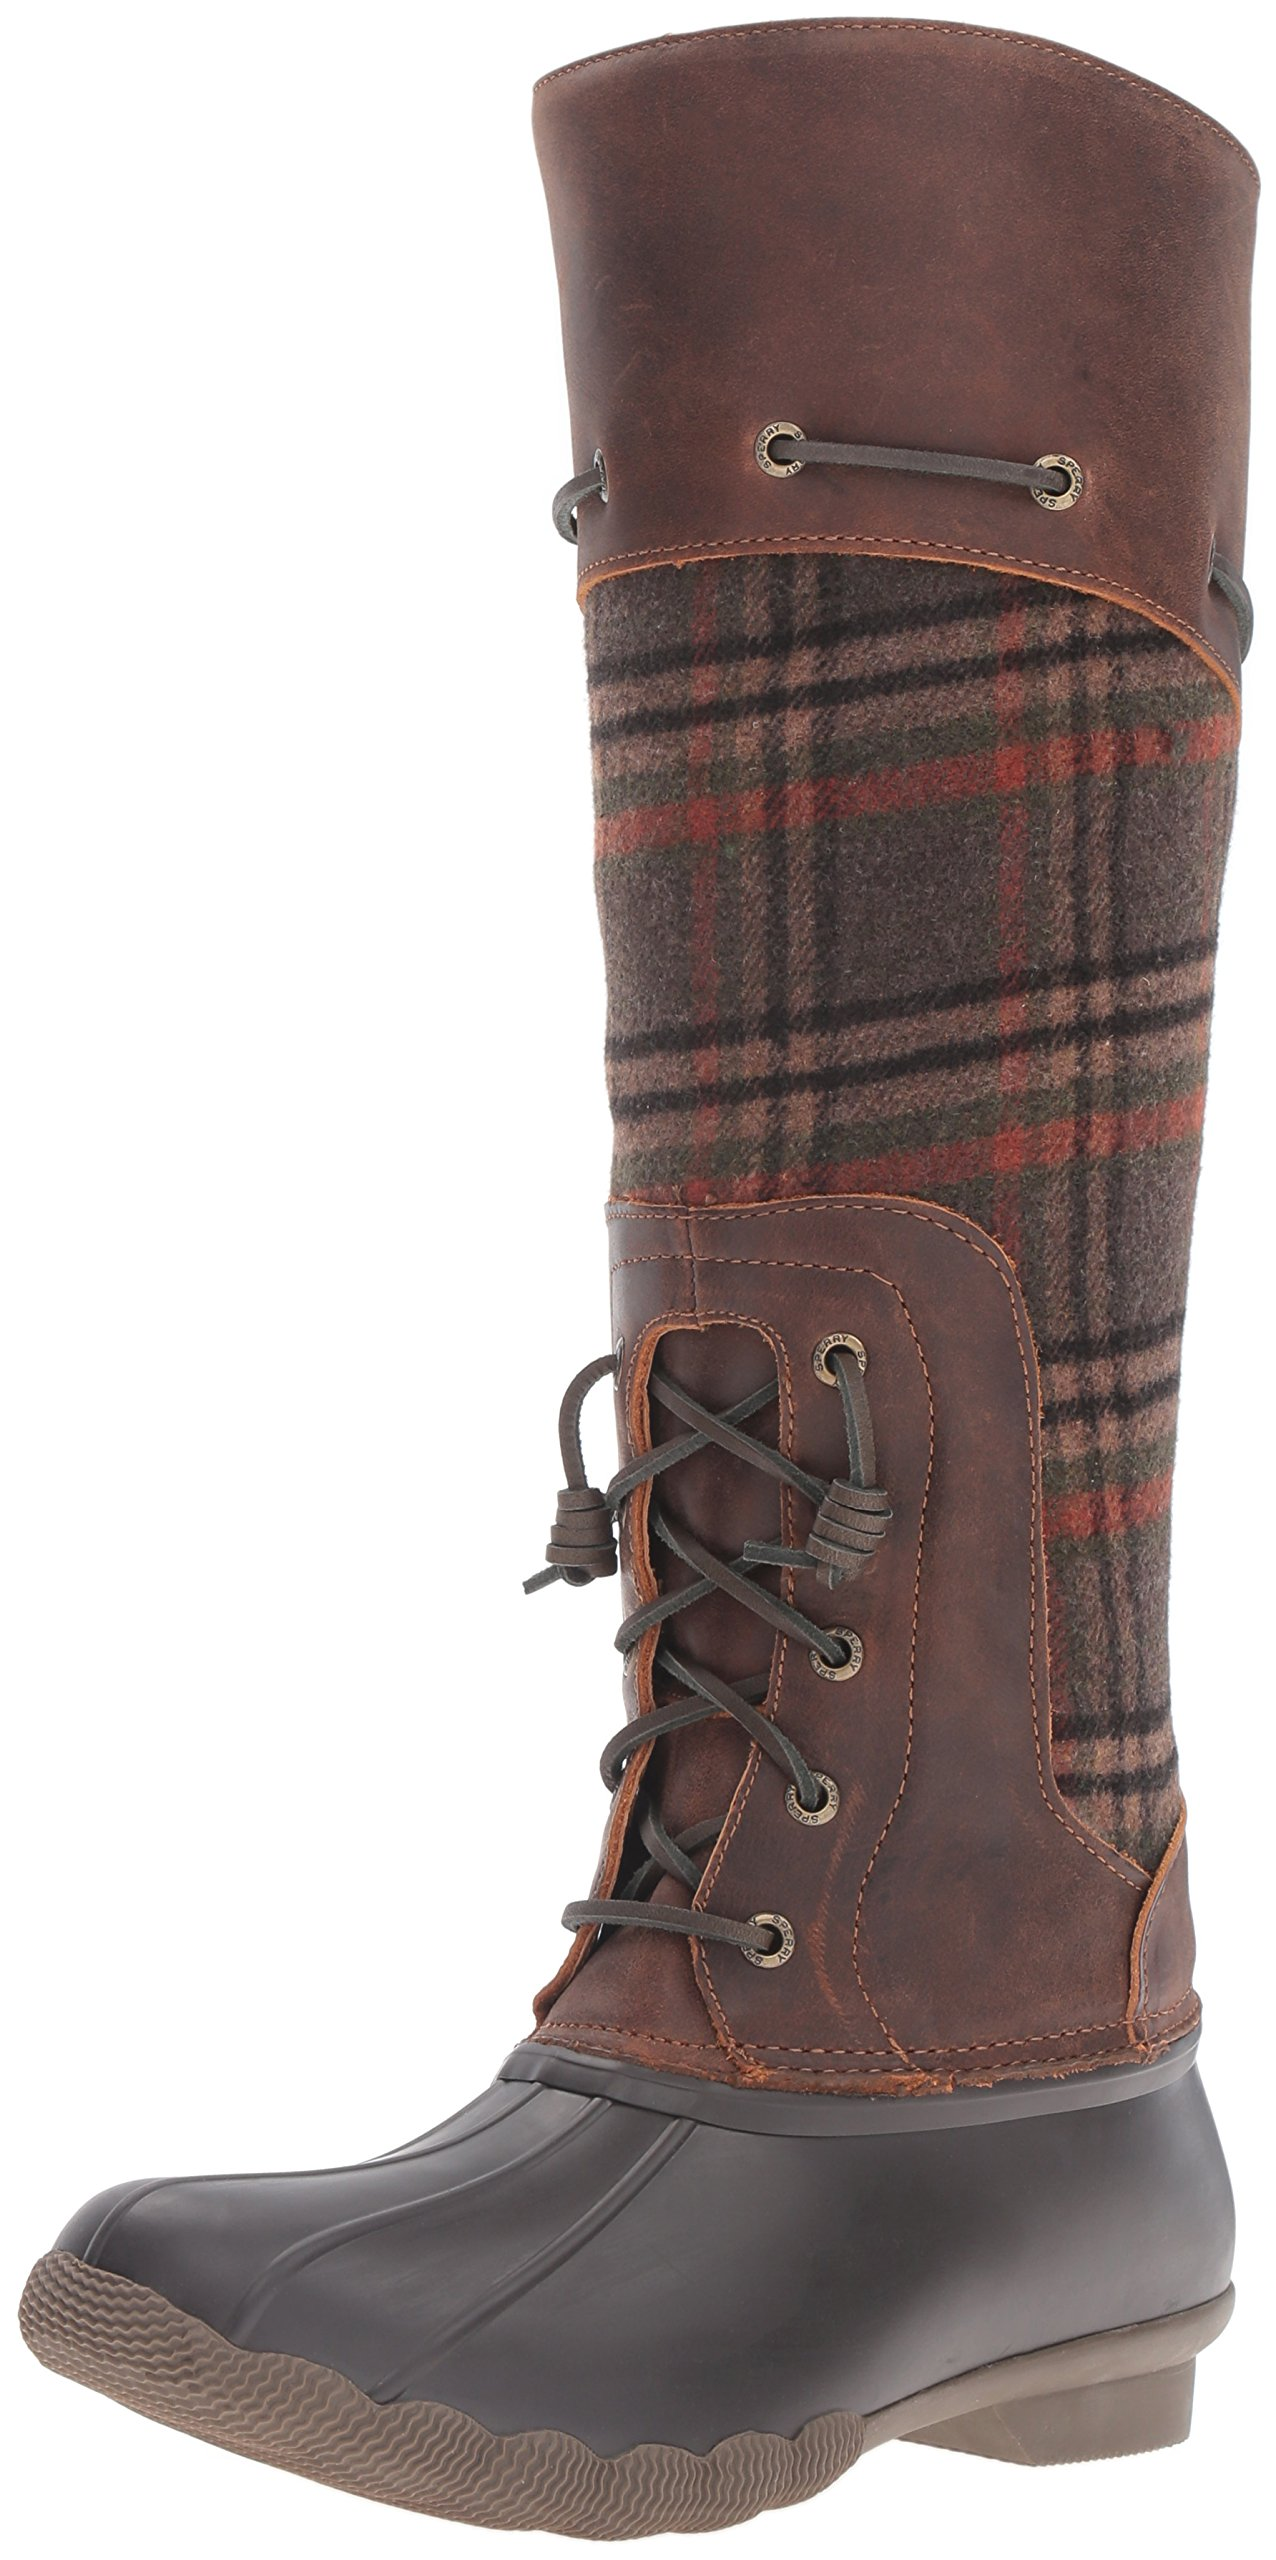 Sperry Top-Sider Women's Saltwater Sela Brown Wool Plaid Rain Boot, Brown/Plaid, 8 M US by Sperry